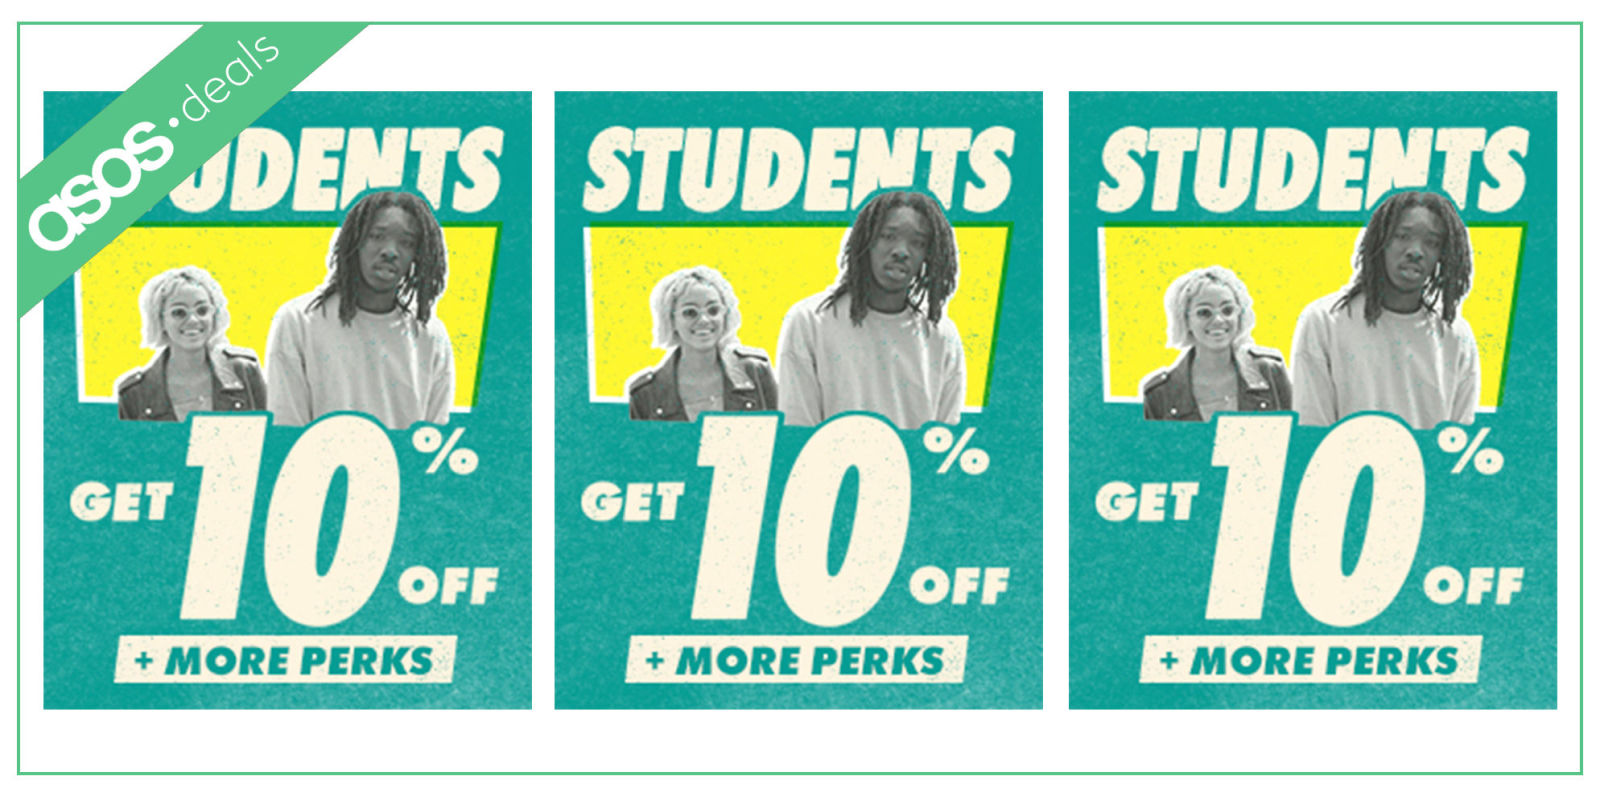 Student discounts com coupon code